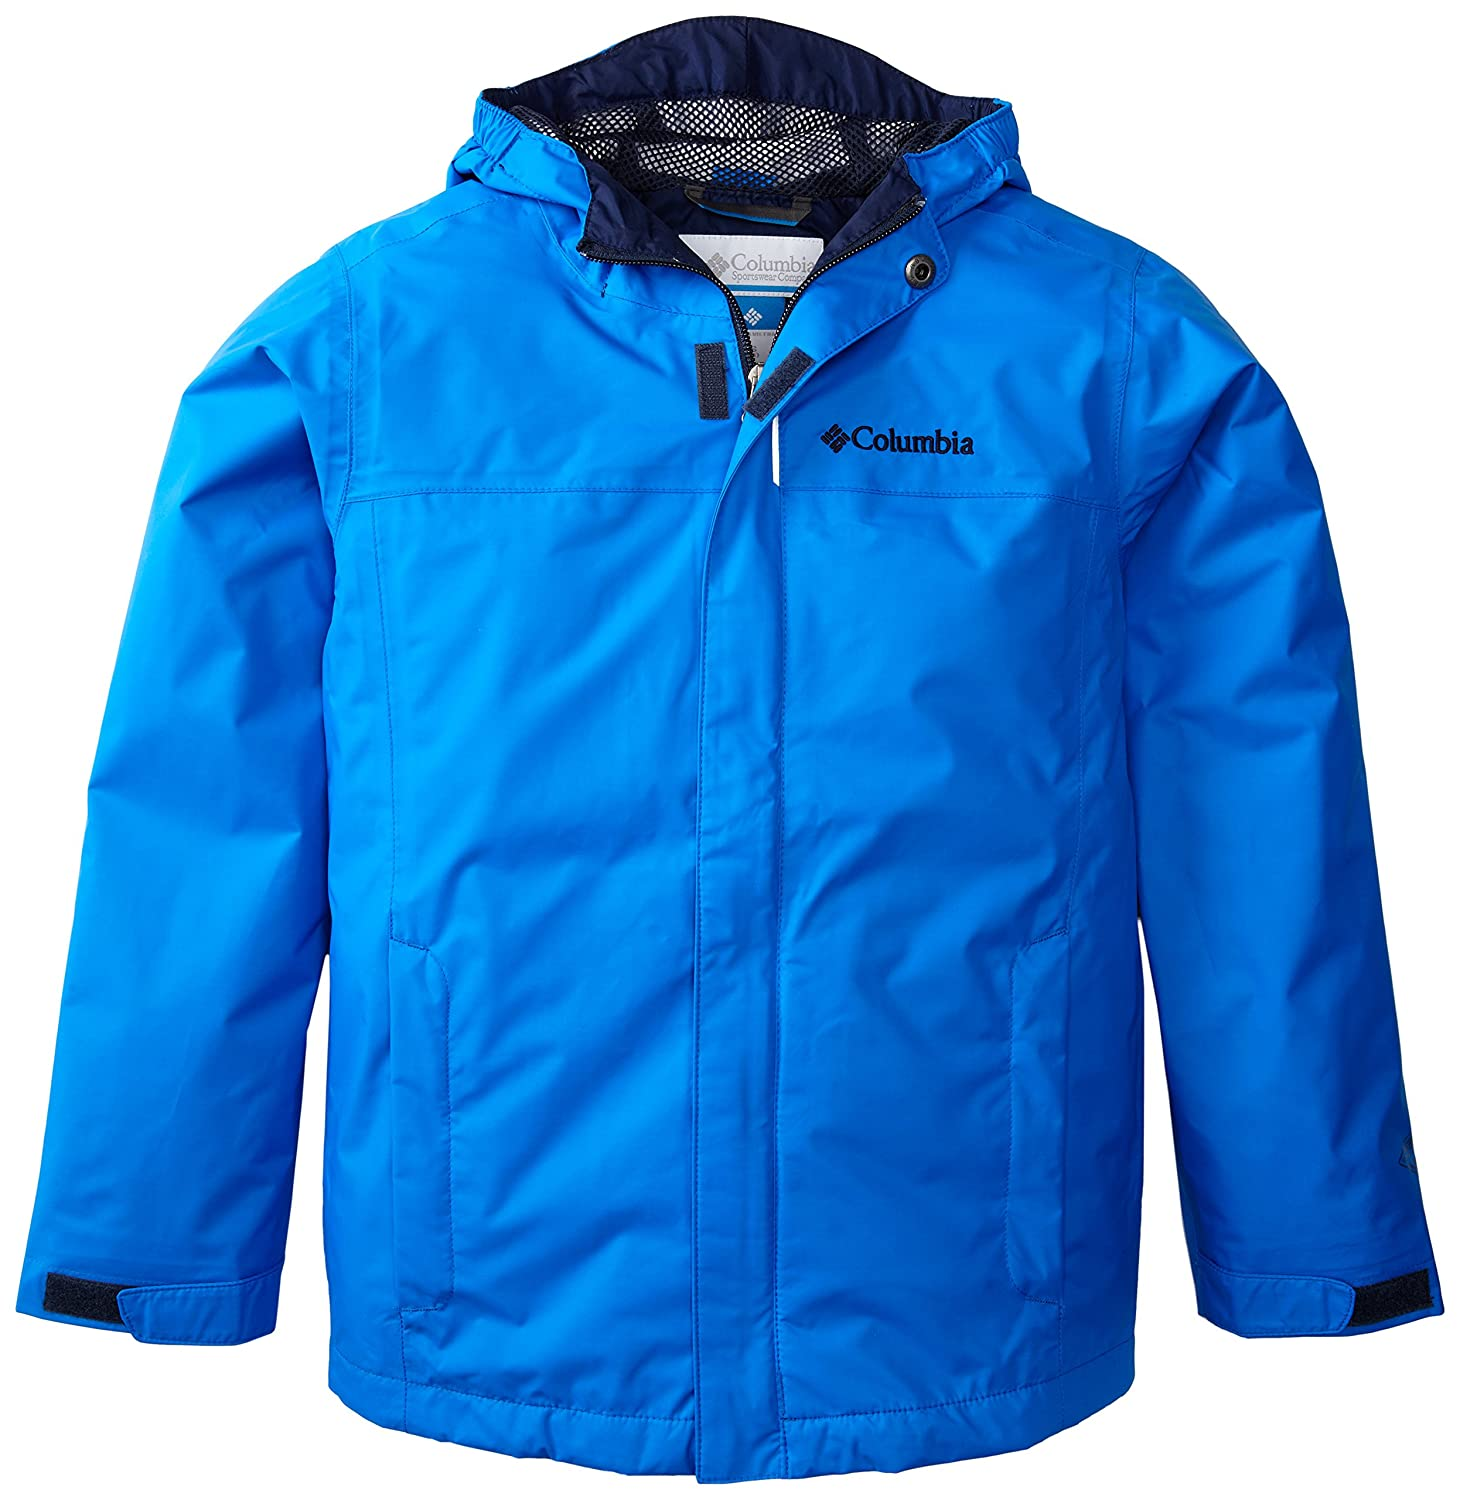 Columbia Watertight Jacket - Chaqueta para niño, color azul, talla S 1168451Littleboys